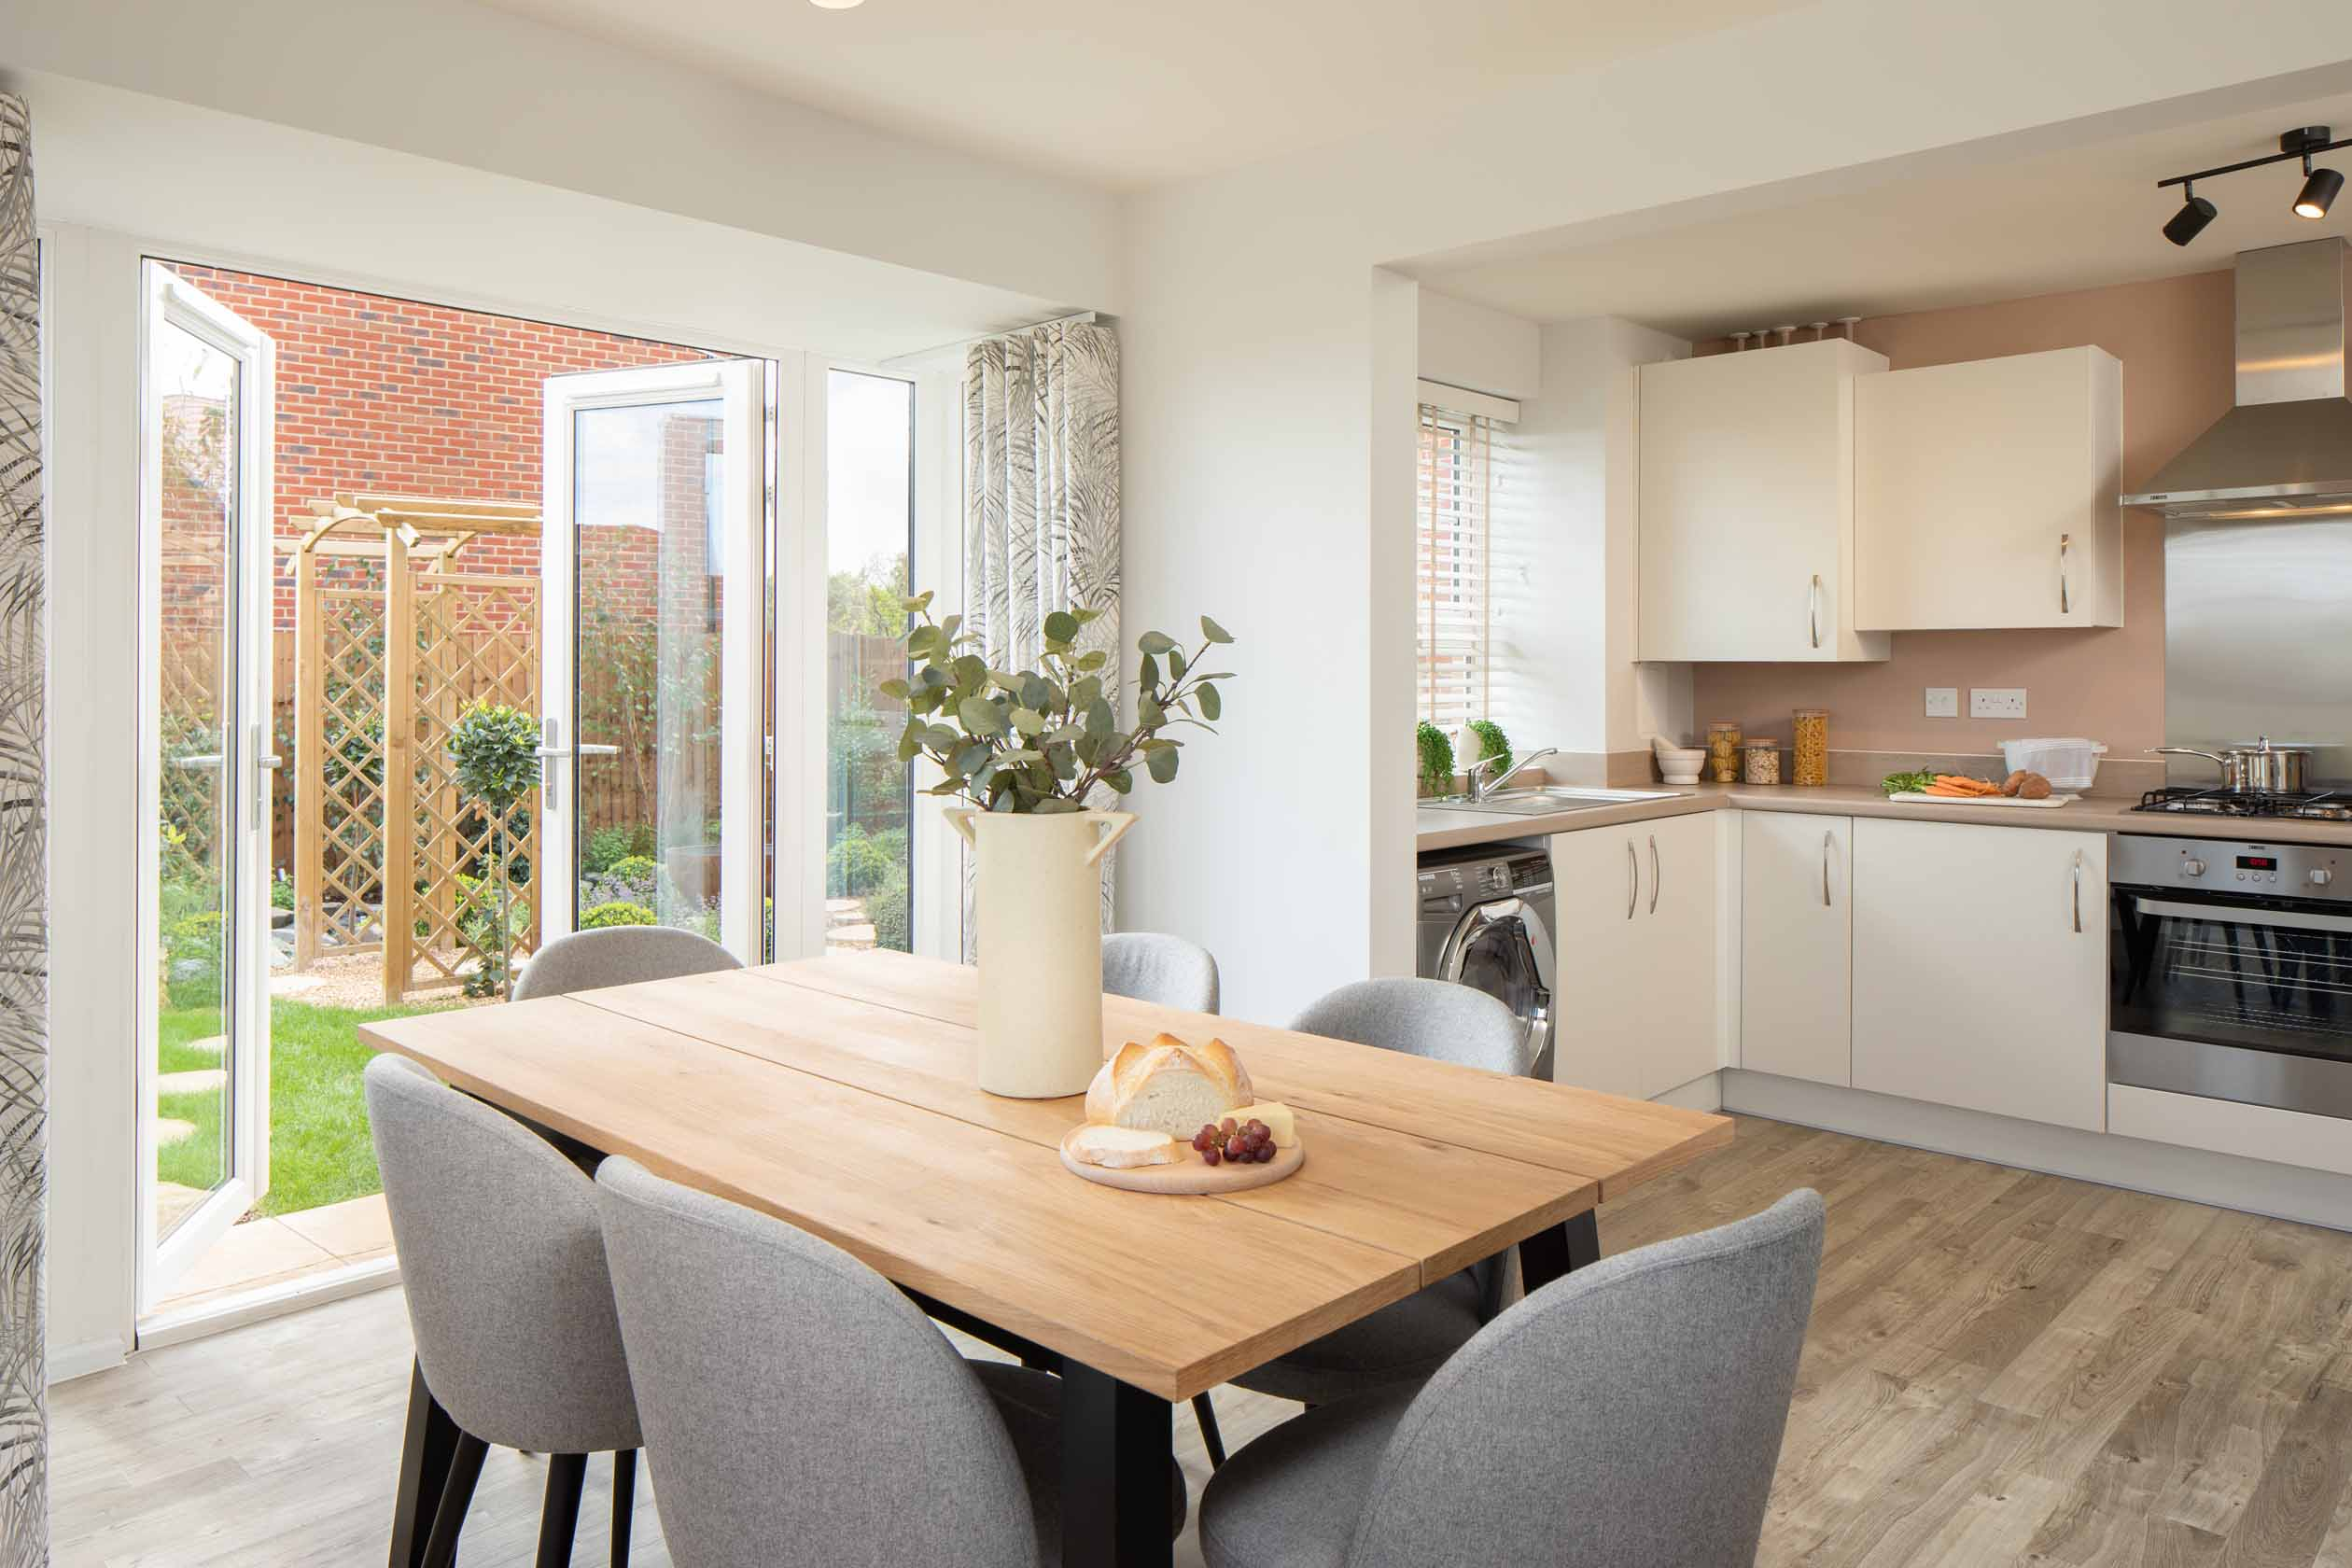 Morpeth internal kitchen and dining room with french doors, barratt homes, orchard green, kingsbrook